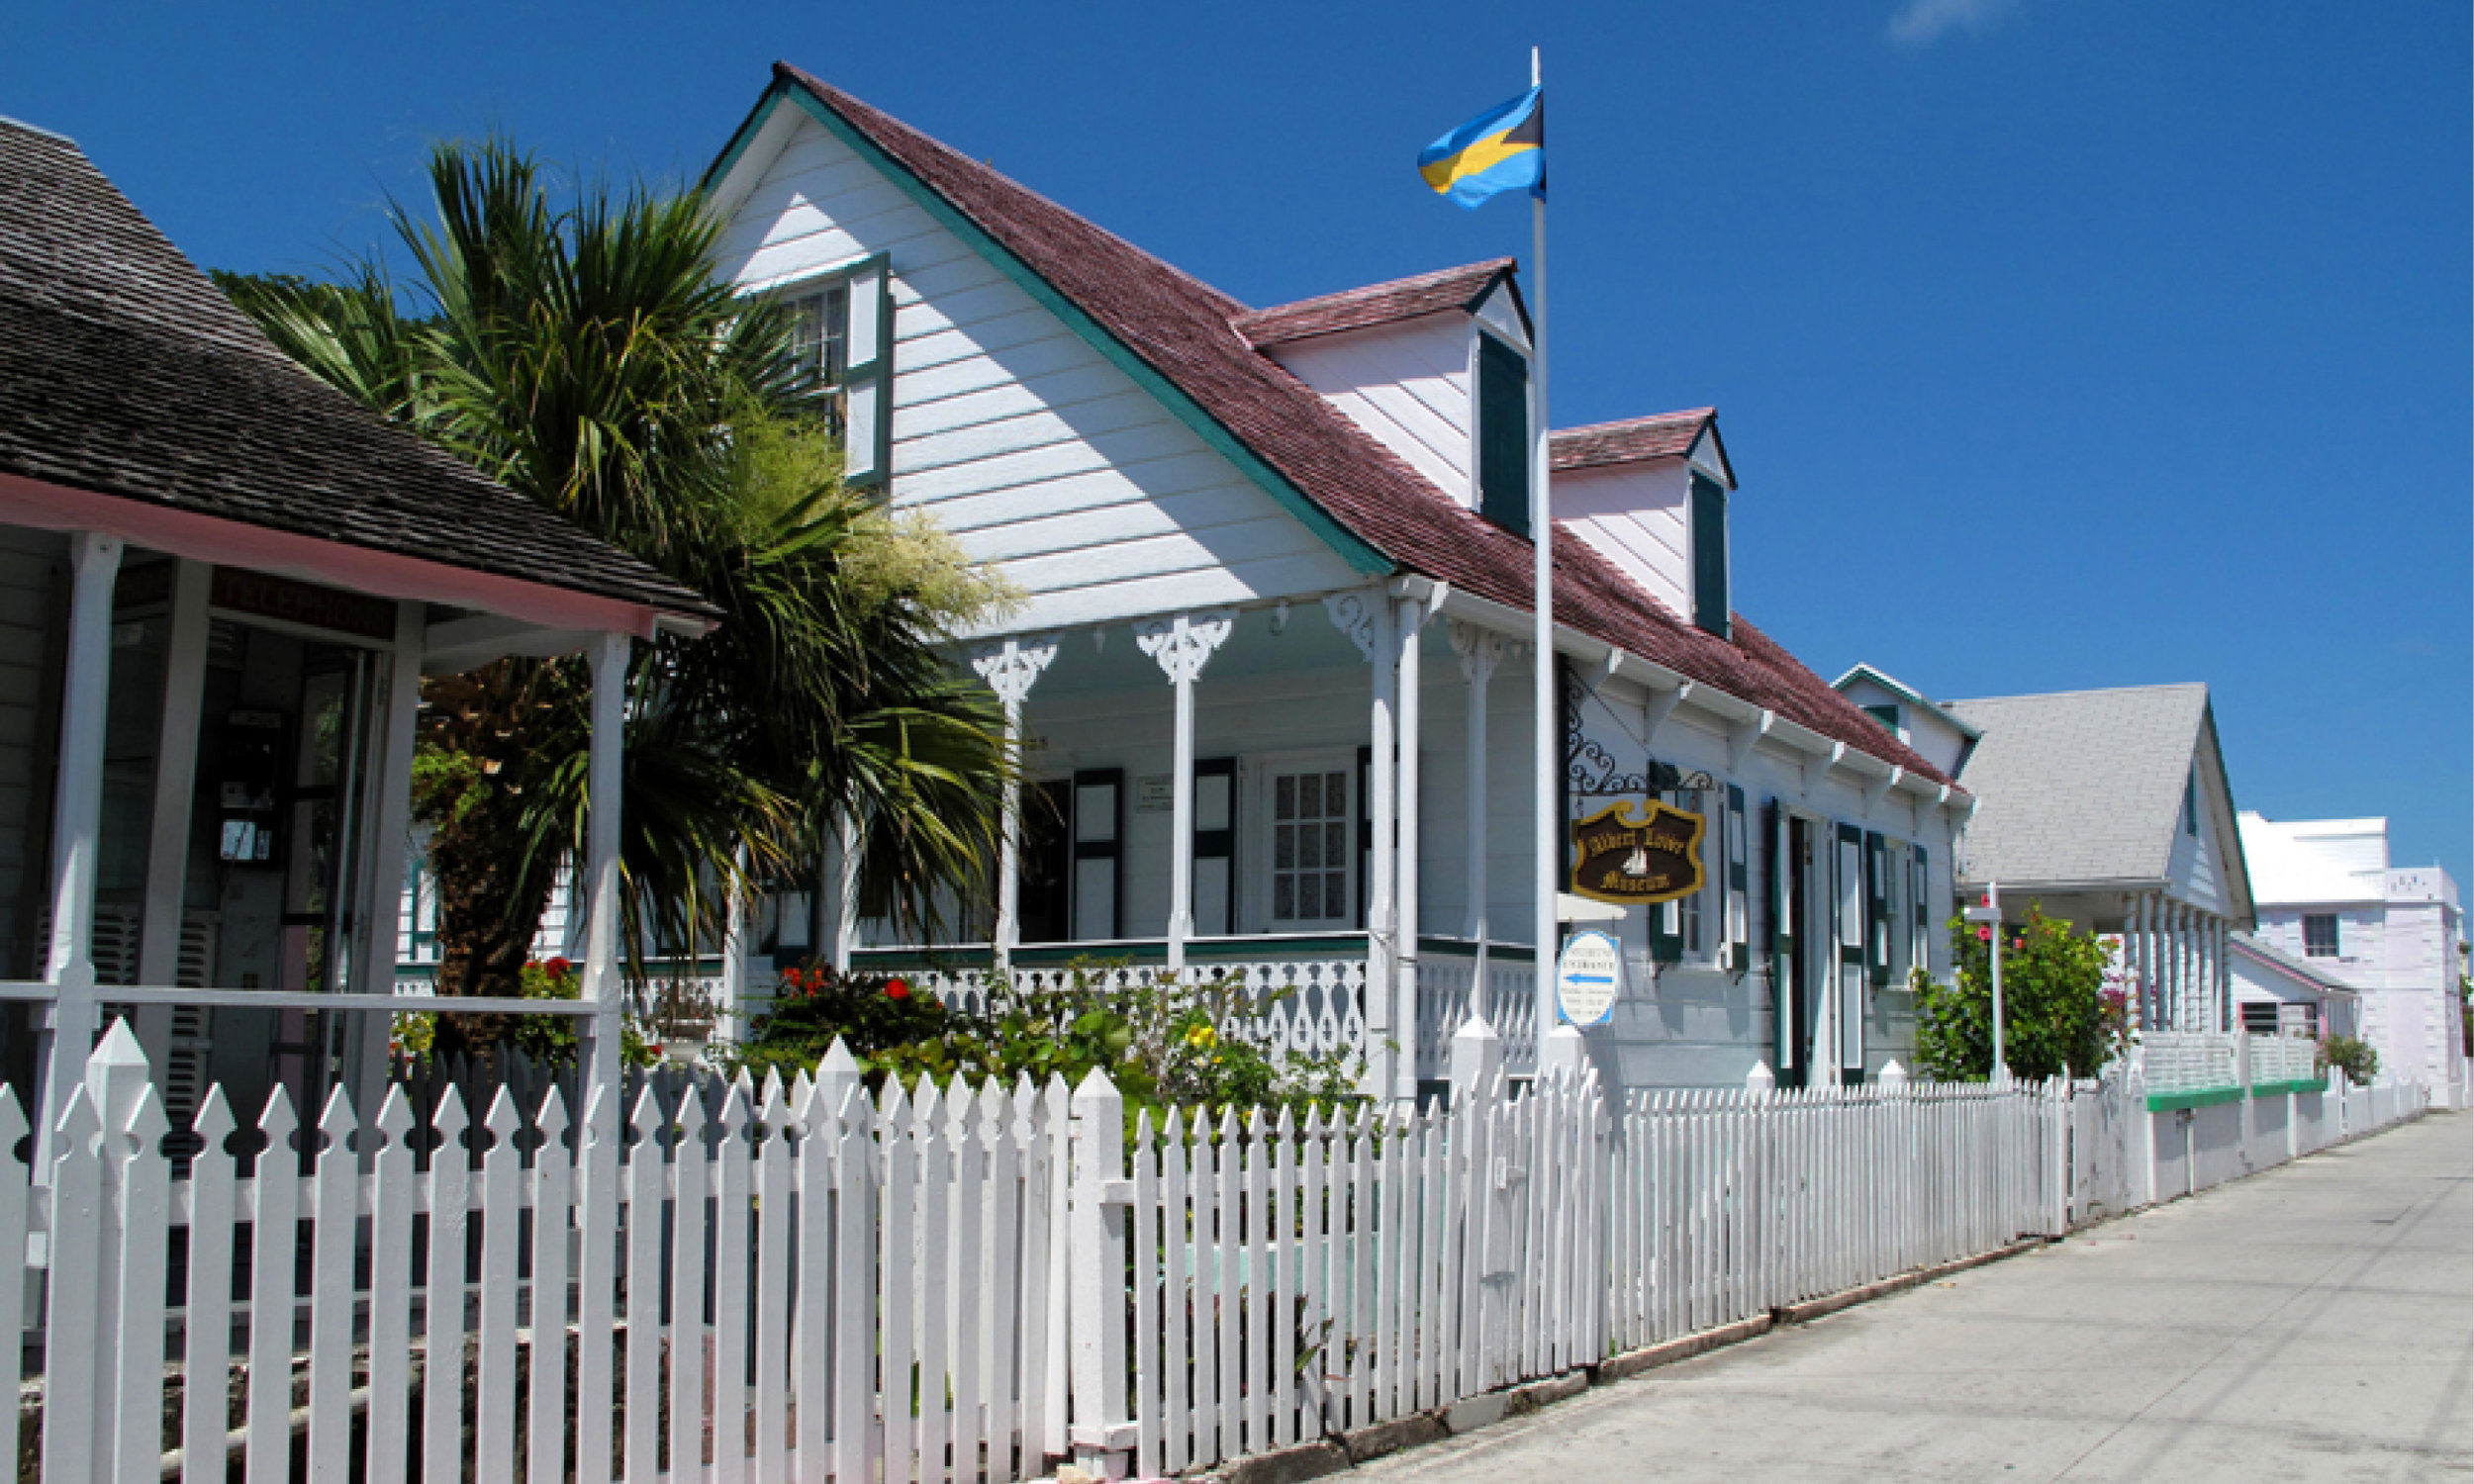 yacht-sweet-escape-charter-abaco-piggyville-Green-Turtle-Cay-Feed-Hope-Town-LightHouse-swimming-pigs-albert-Lowe-Museum